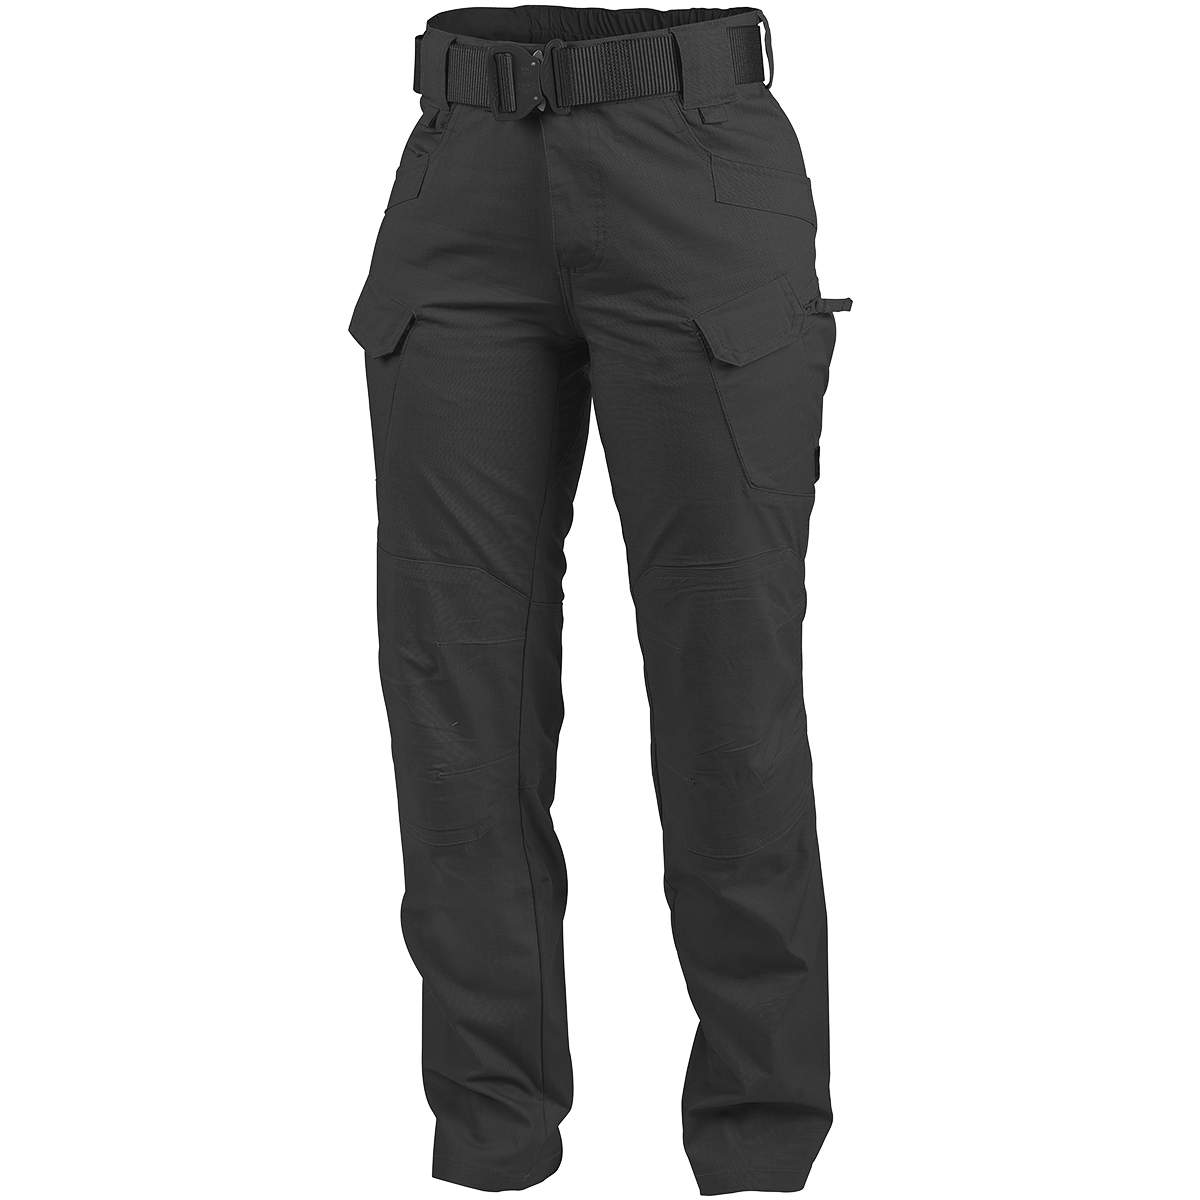 Find great deals on eBay for women cargo pants black. Shop with confidence.